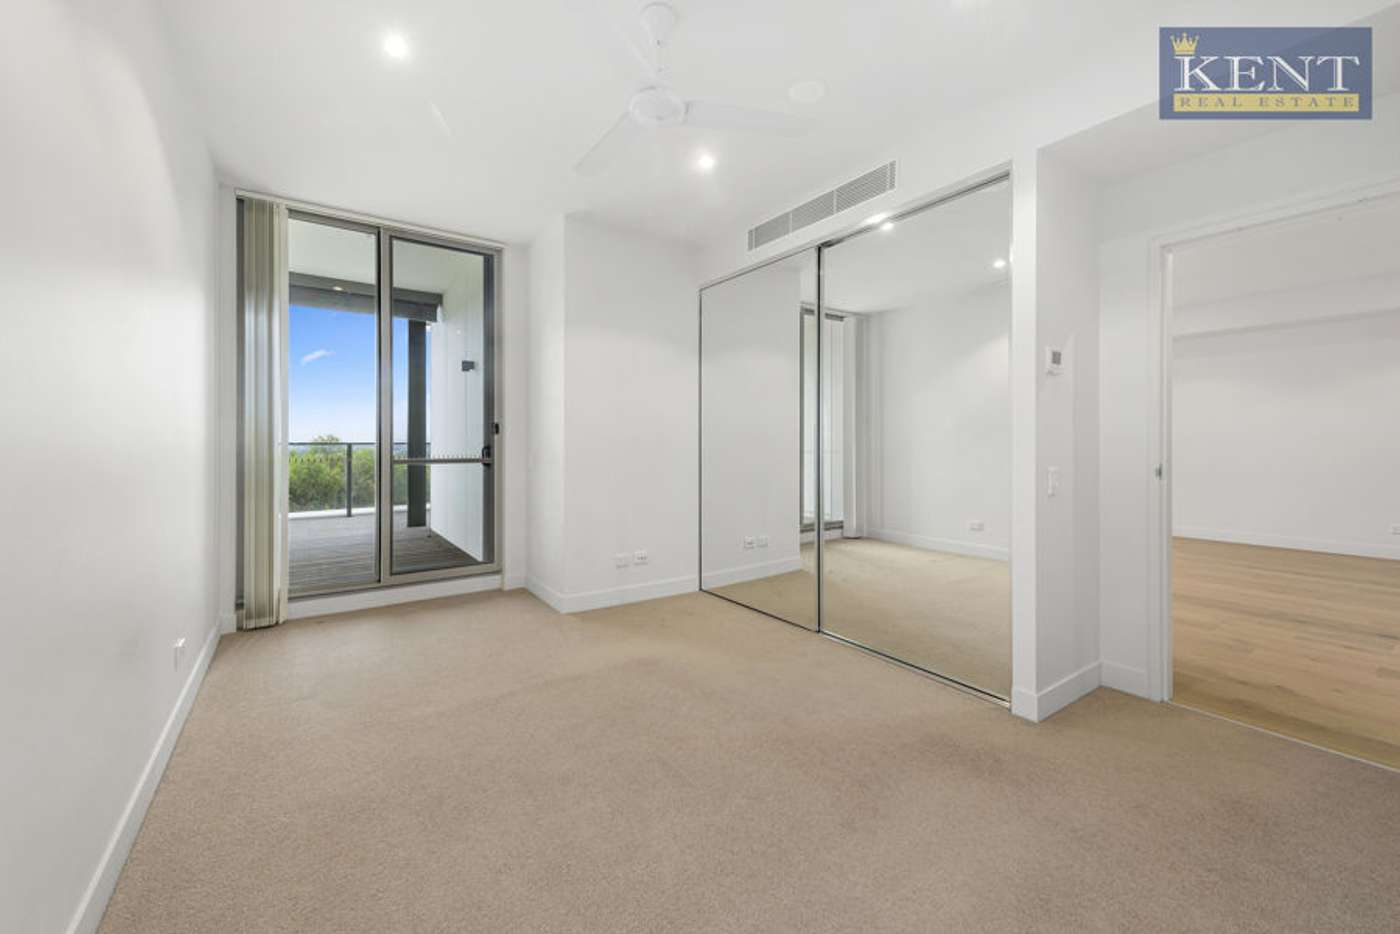 Sixth view of Homely apartment listing, 506/29 Lindfield Ave, Lindfield NSW 2070